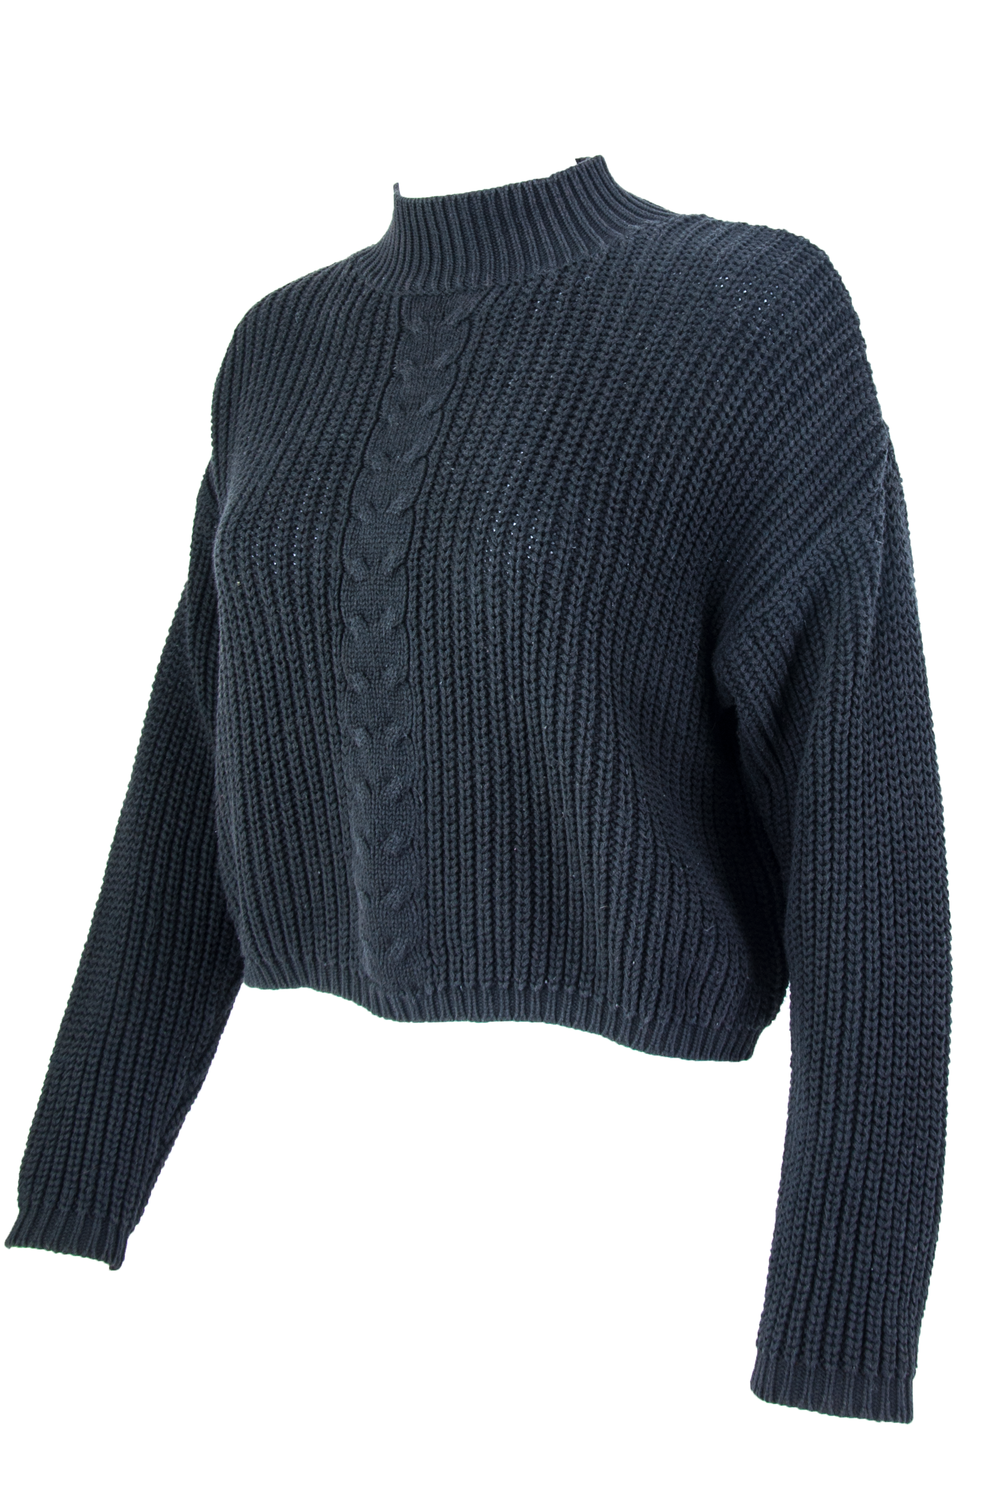 black vintage sweater with mock neck and cropped length